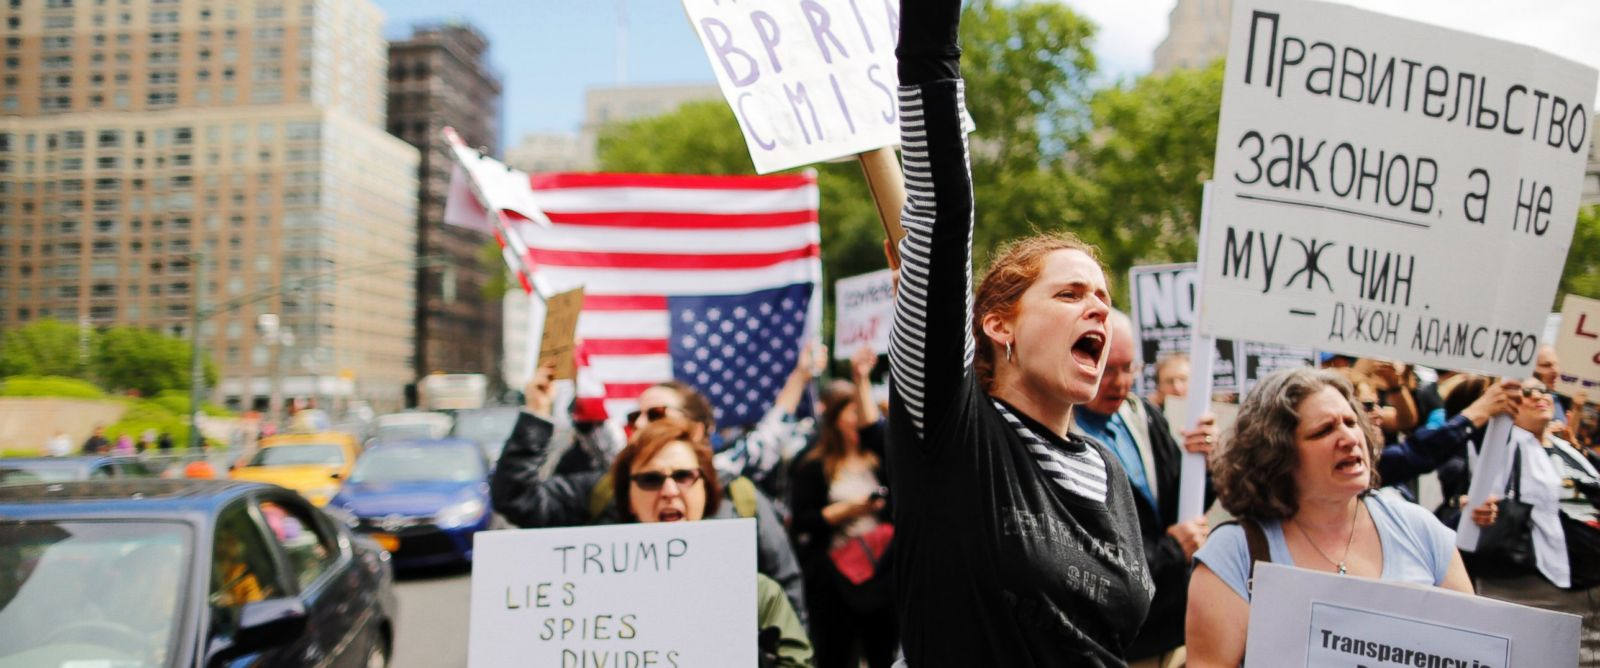 """PHOTO: Demonstrators take part in an anti-Trump """"March for Truth"""" rally at Foley Square on June 3, 2017 in New York City."""